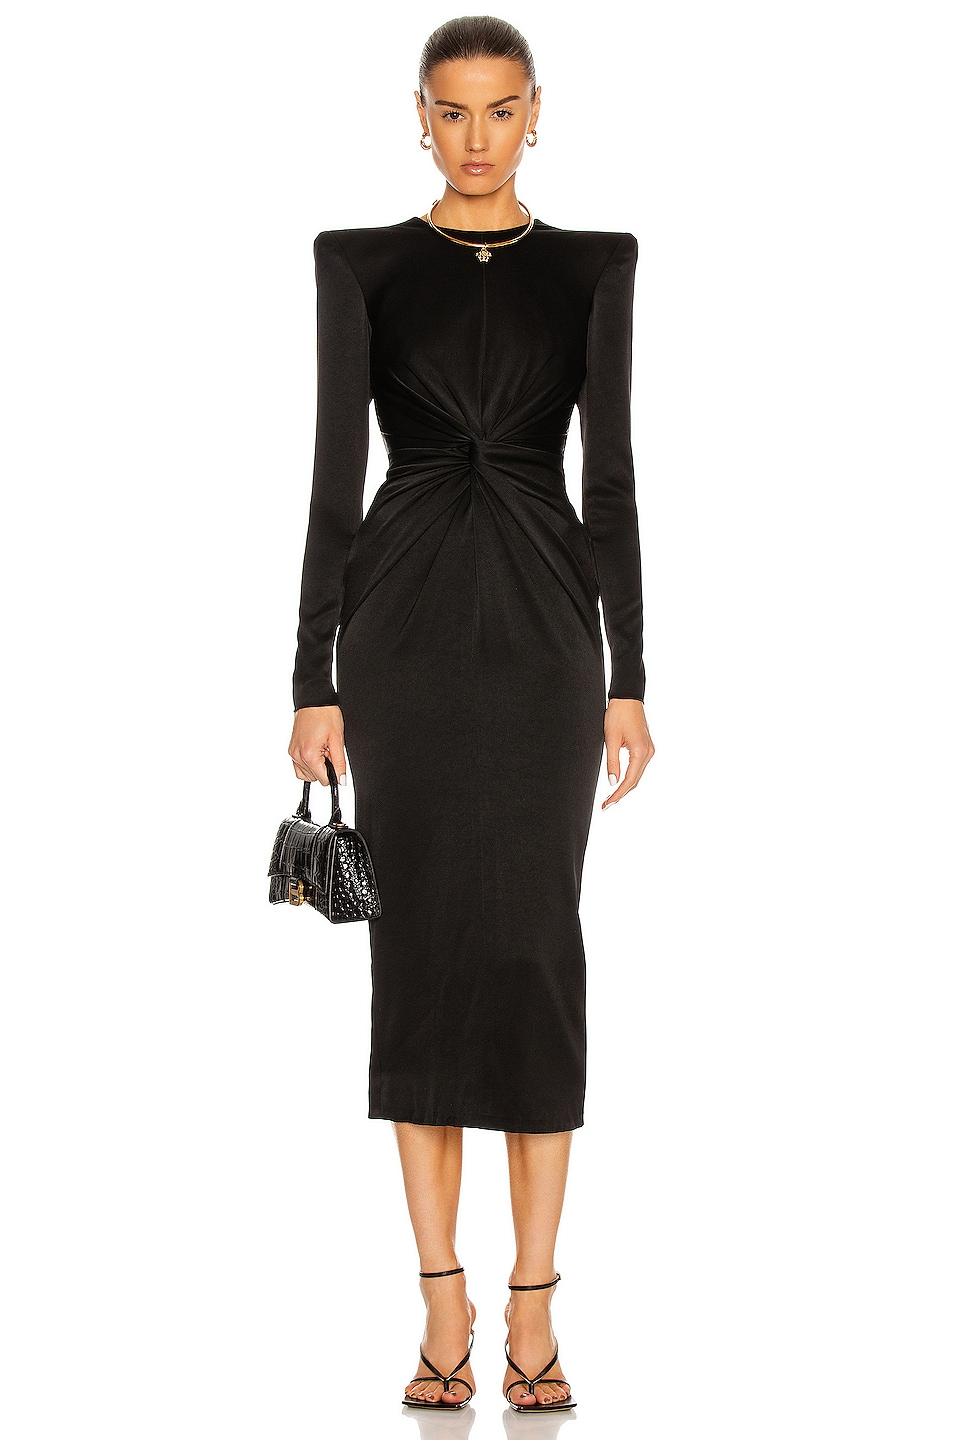 Image 1 of Alex Perry Darden Dress in Black